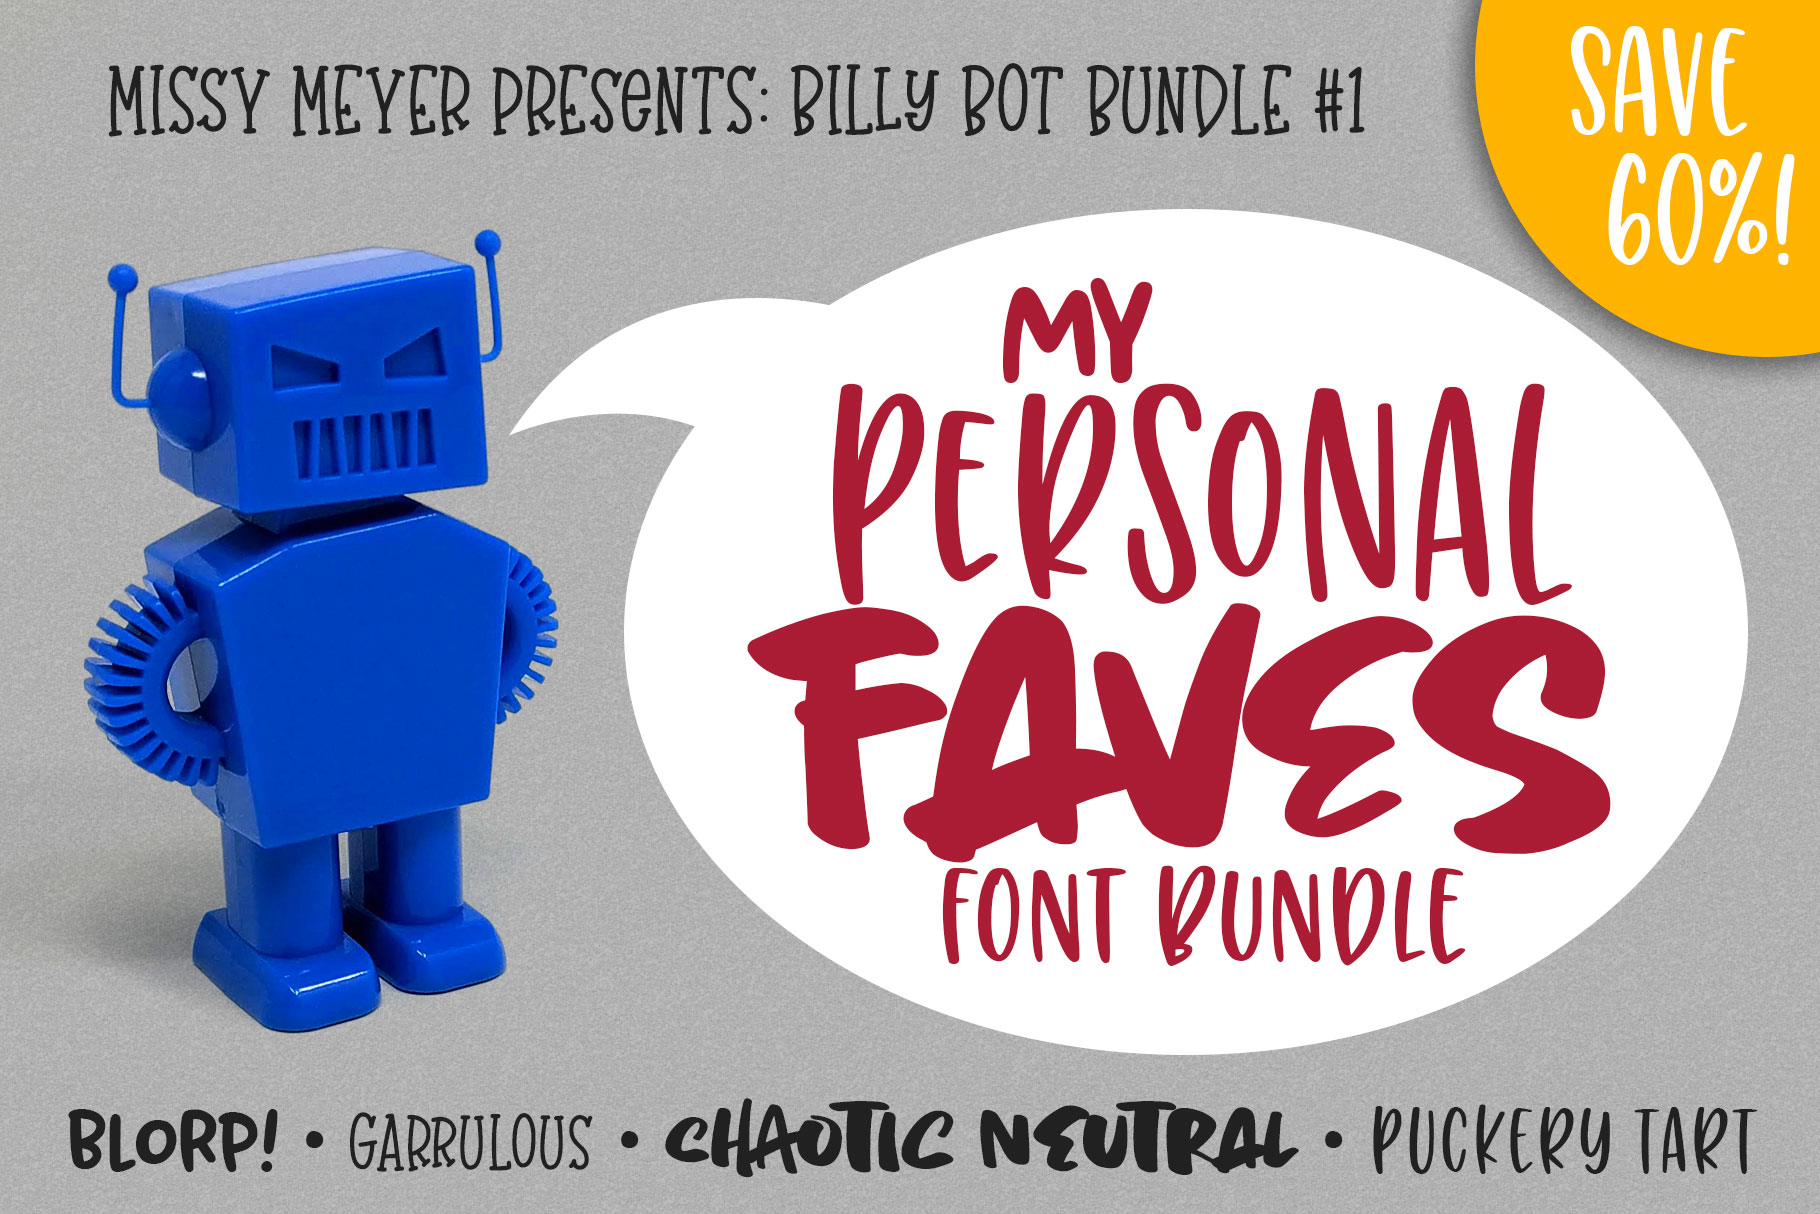 Billy Bot Bundle 1 - My Personal Faves Font Bundle! example image 1